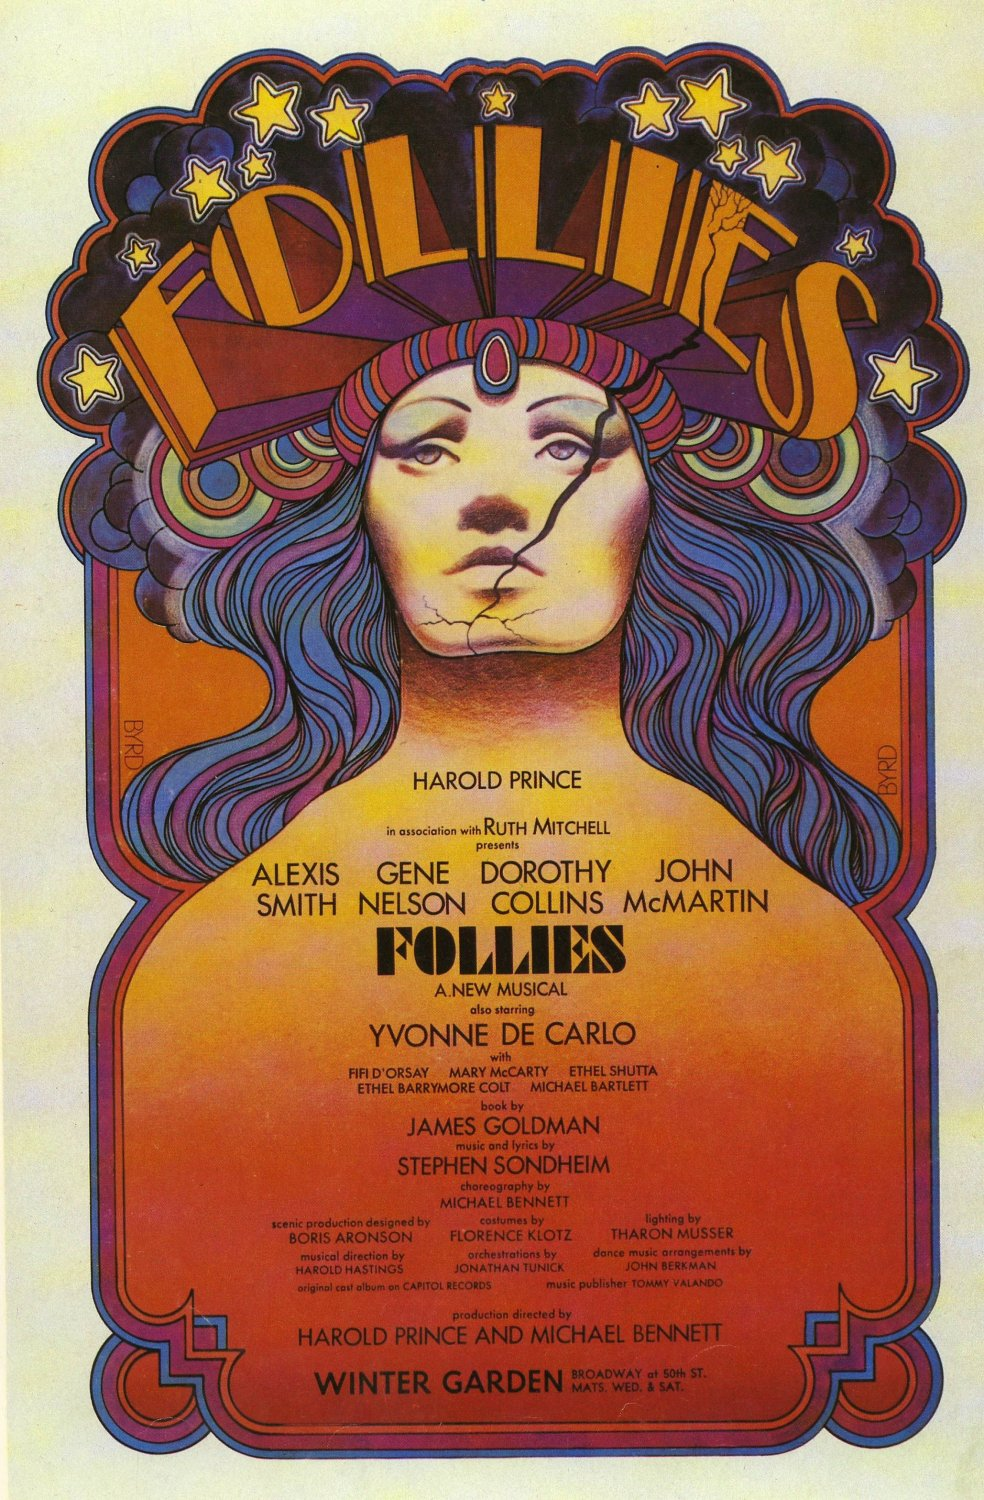 Follies 1971 Broadway Show Poster 12x19 inches